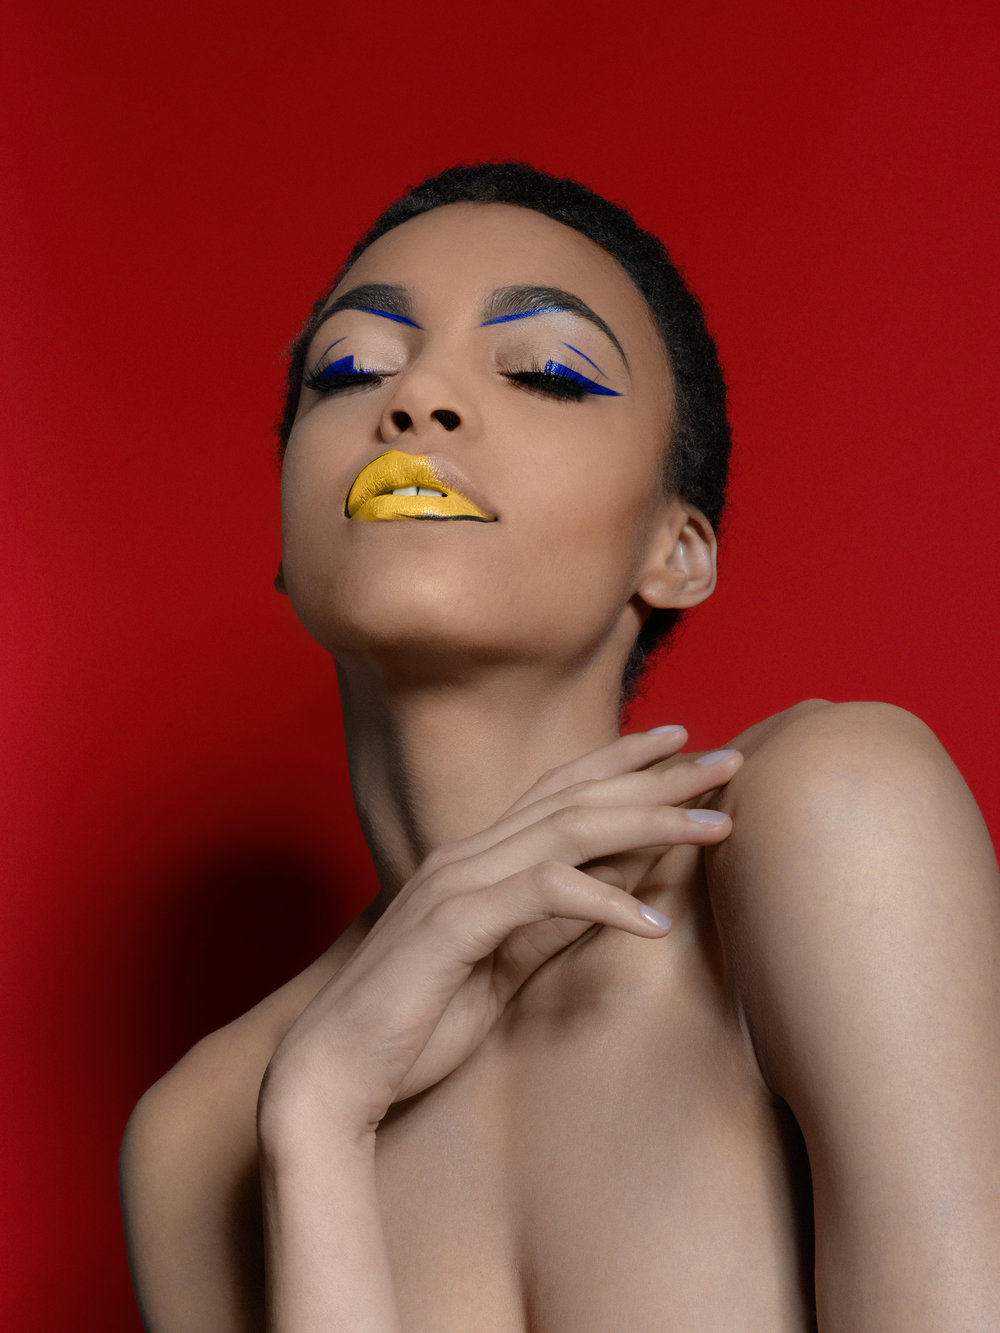 Devyn Abdullah x Andrew Werner Photography - Mondrian Editorial - RED.jpg